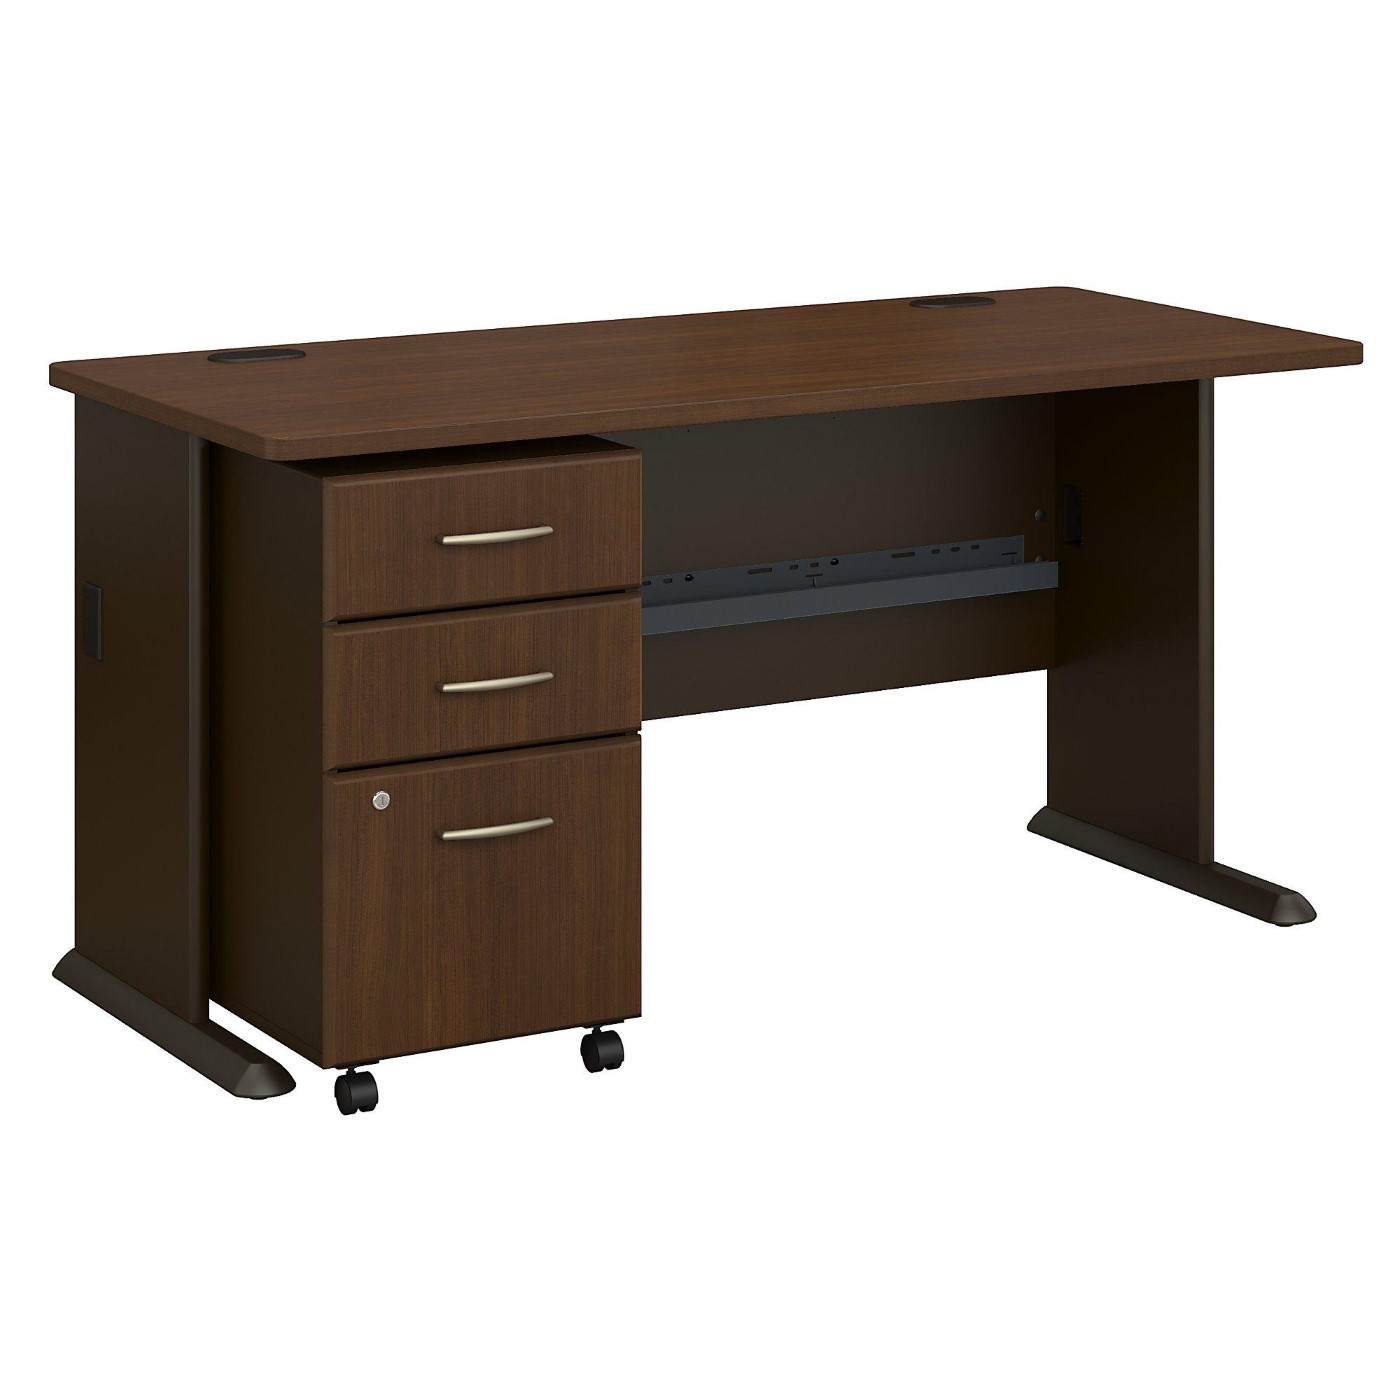 <font color=#c60><b>BUSH BUSINESS FURNITURE SERIES A 60W DESK WITH MOBILE FILE CABINET. FREE SHIPPING</font></b>